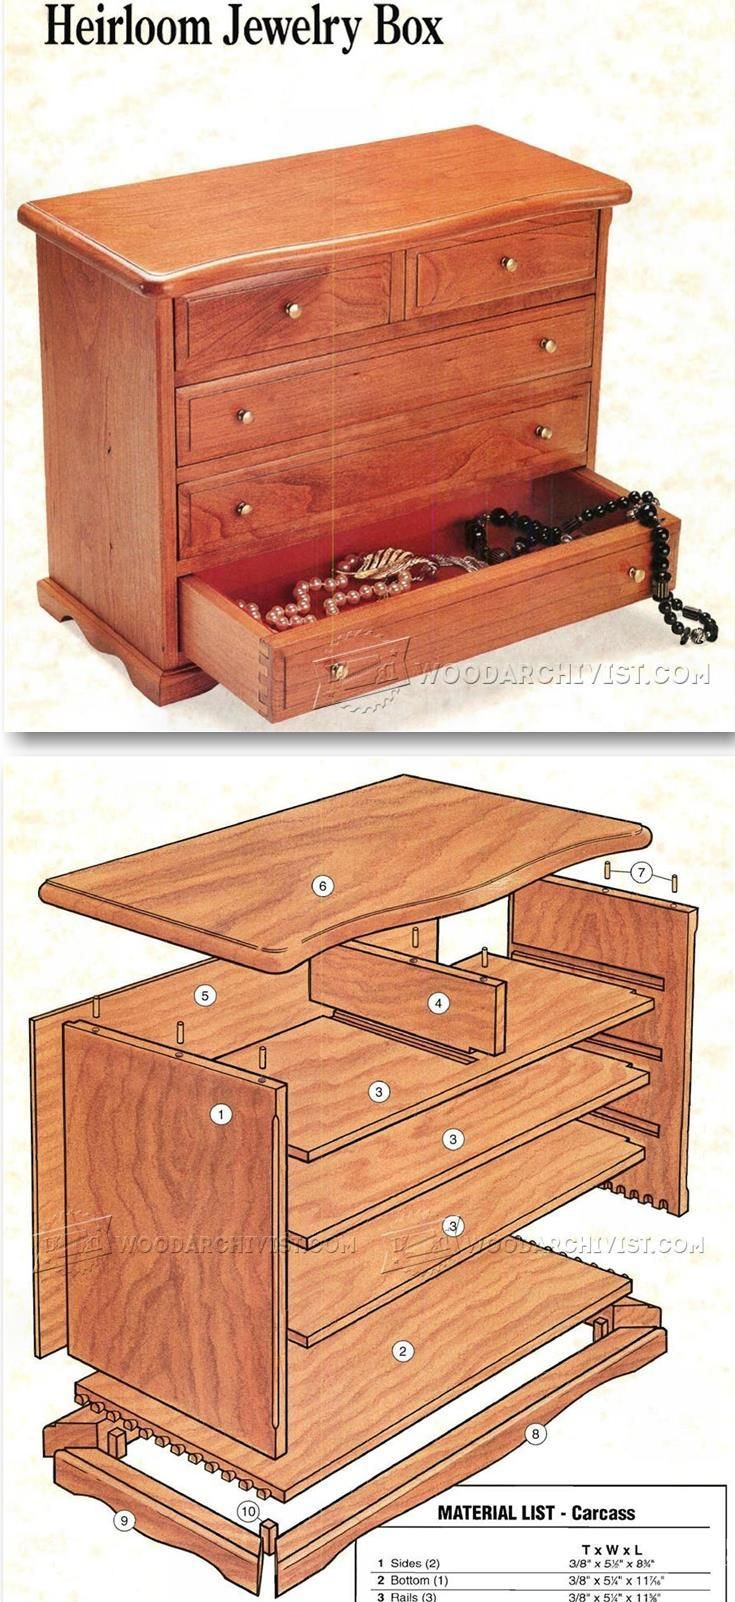 Heirloom jewelry Box Plans - Woodworking Plans and Projects | WoodArchivist.com